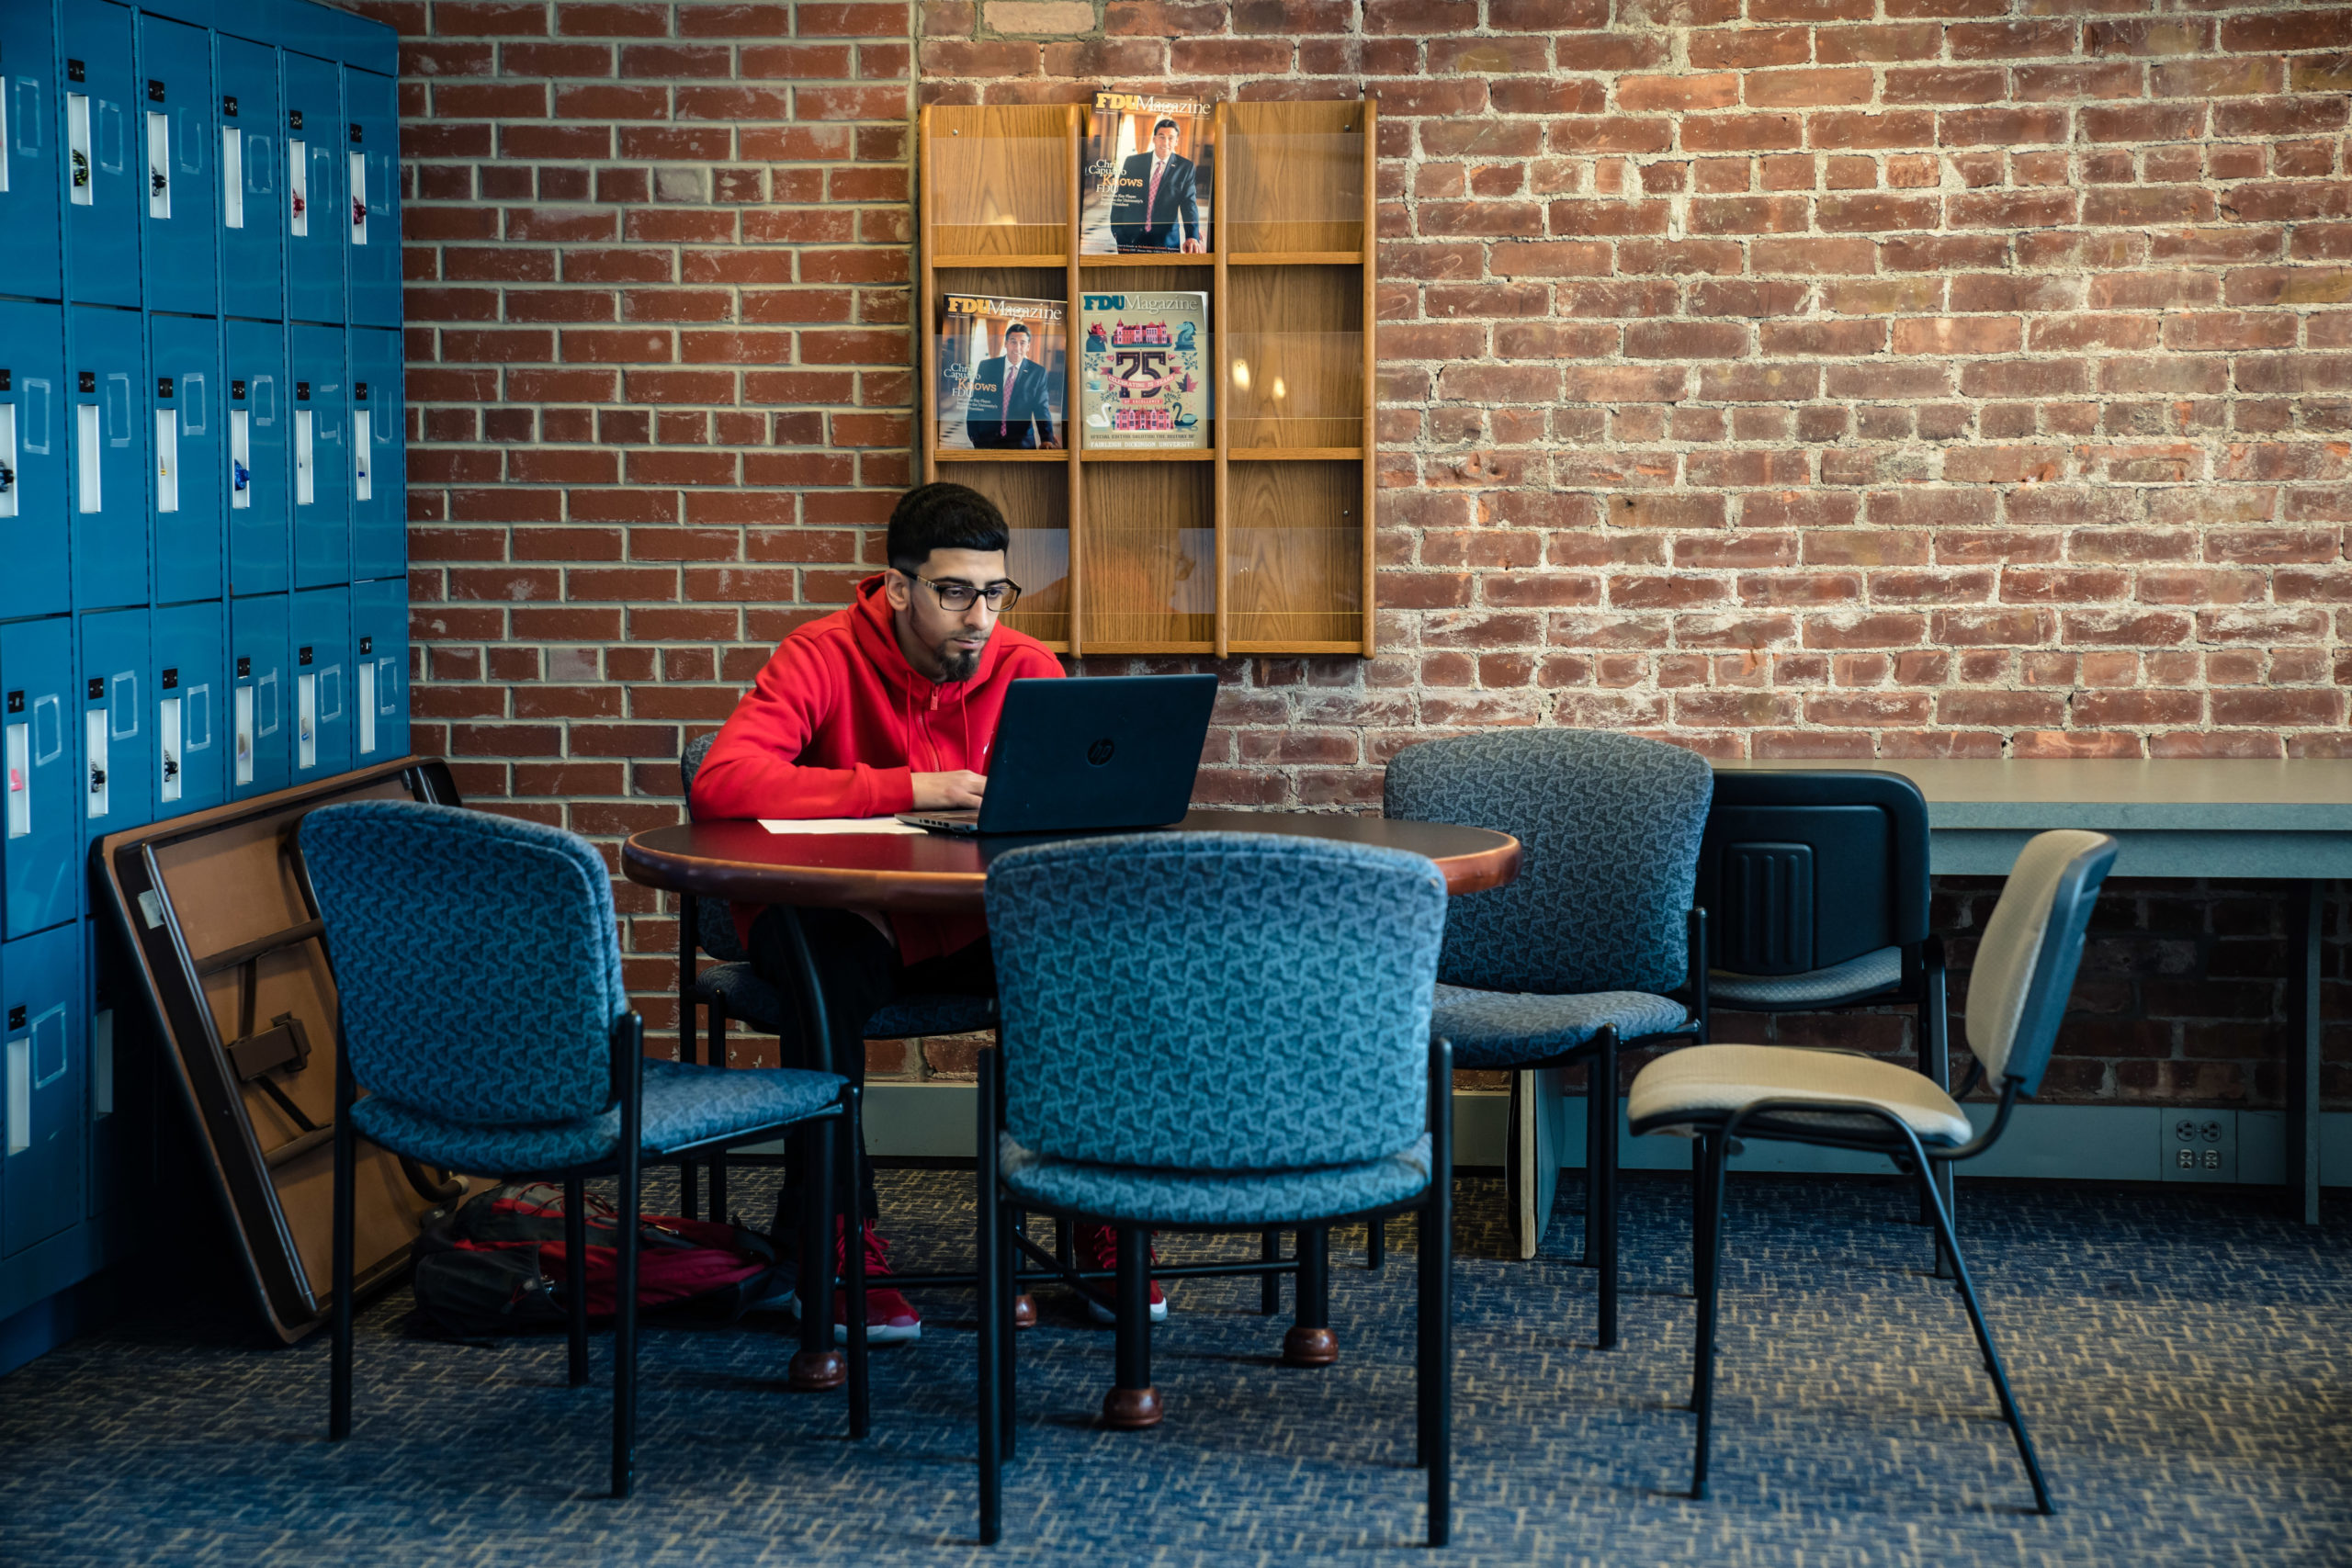 A student works on a laptop at an empty table